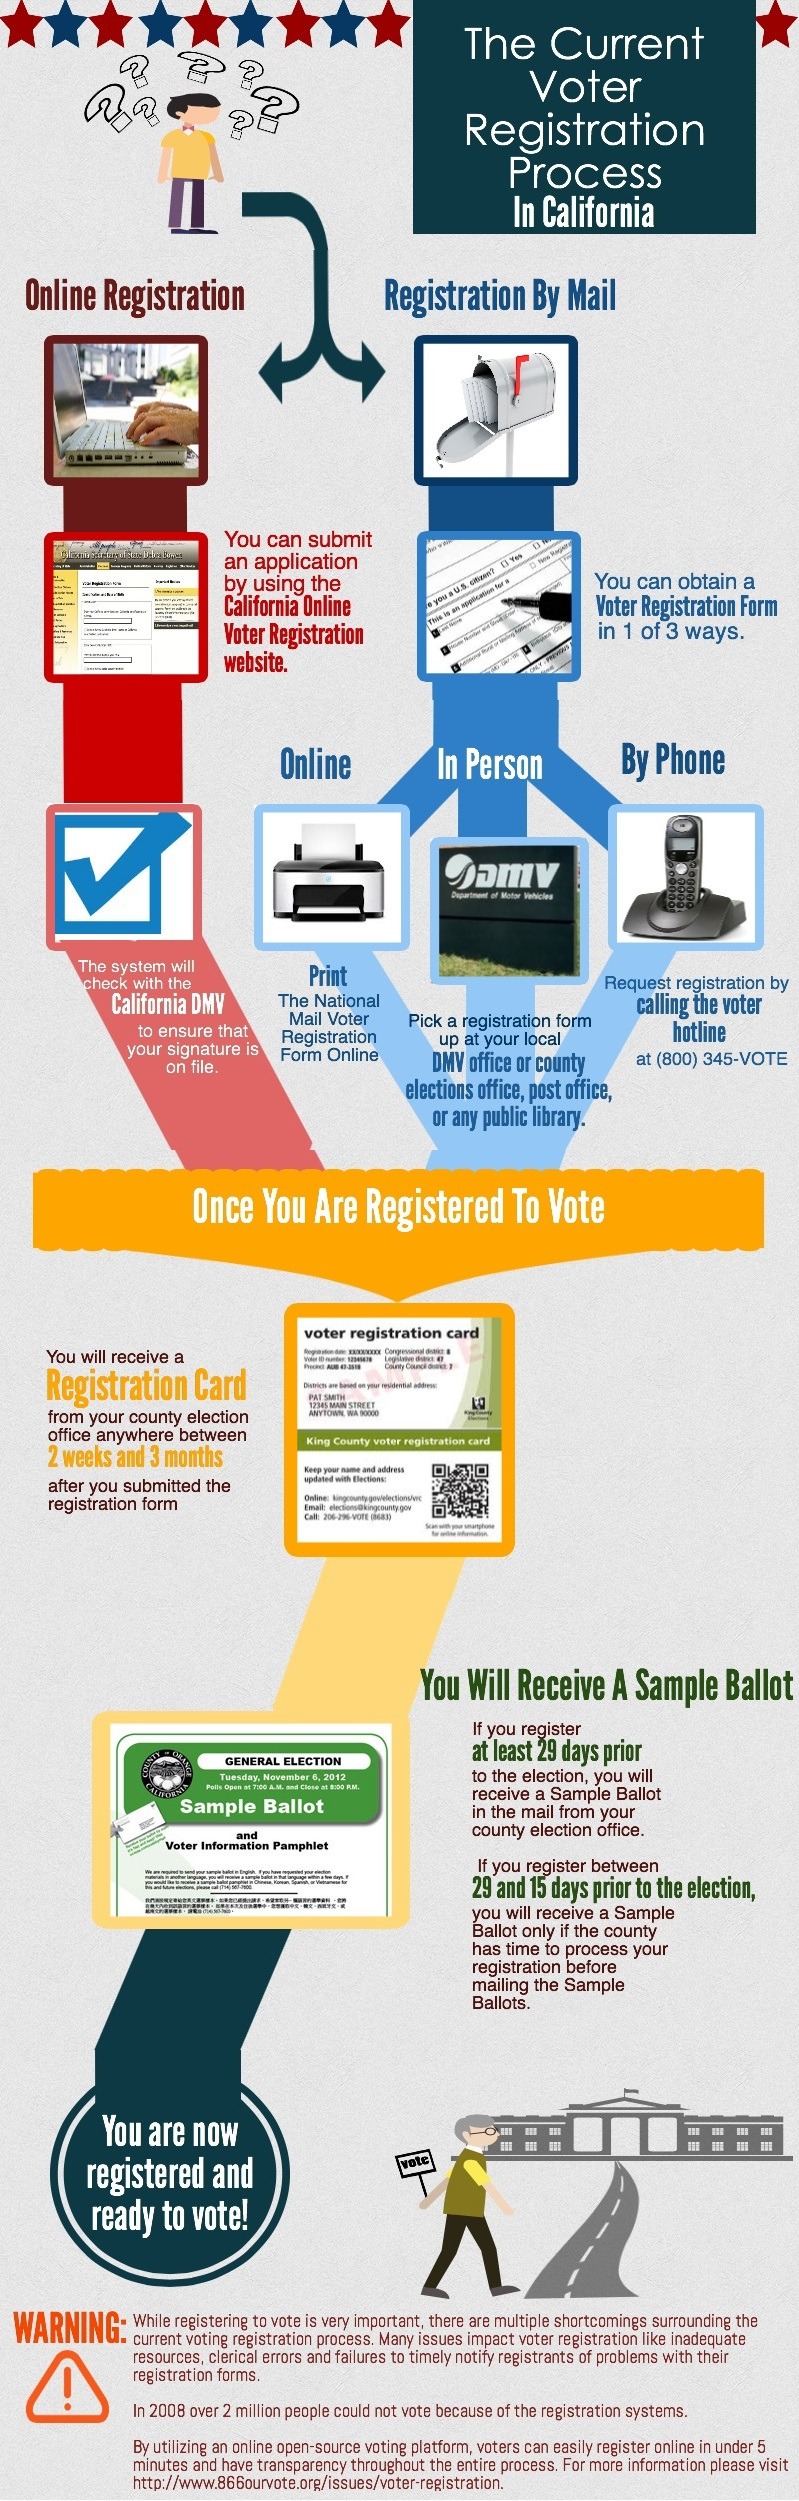 California Voter Registration FMV